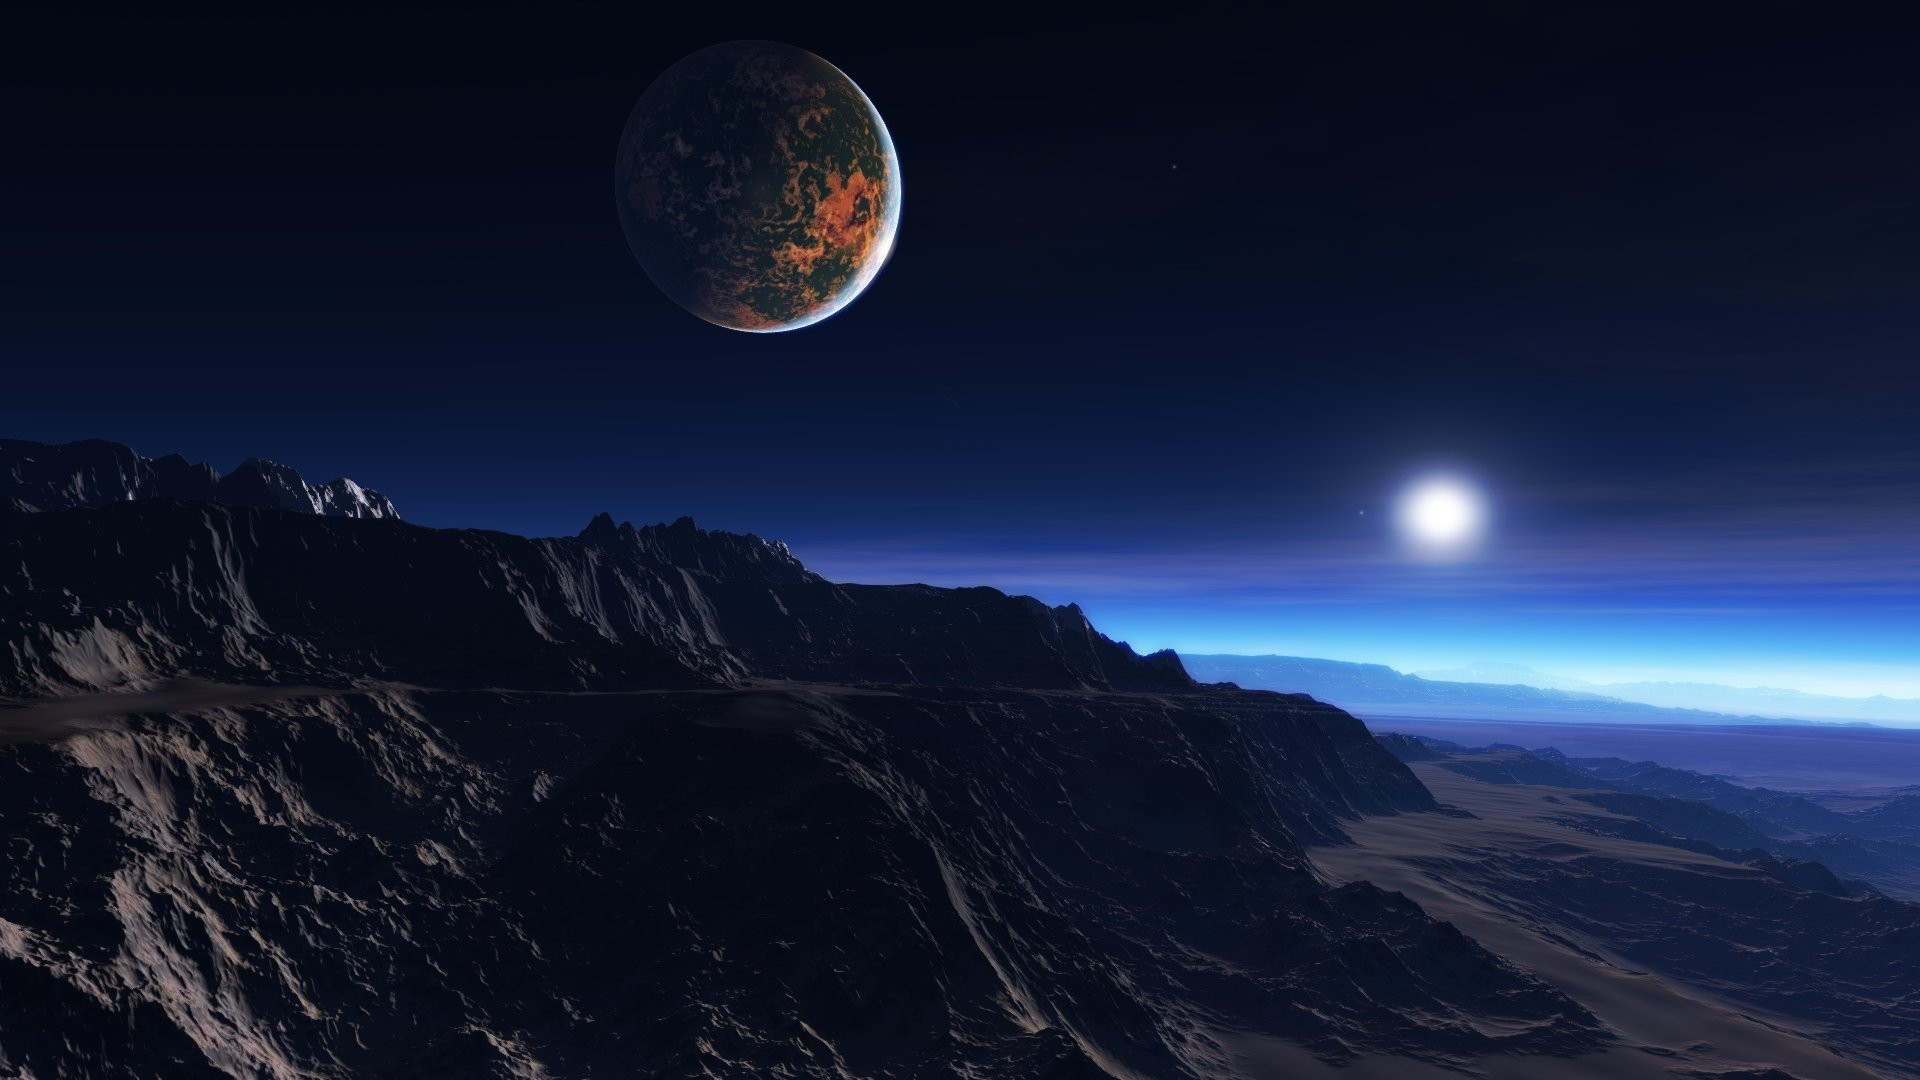 1920x1080 Preview wallpaper exoplanet atmosphere, clouds, stars, moon, mist,  mountains, rocks